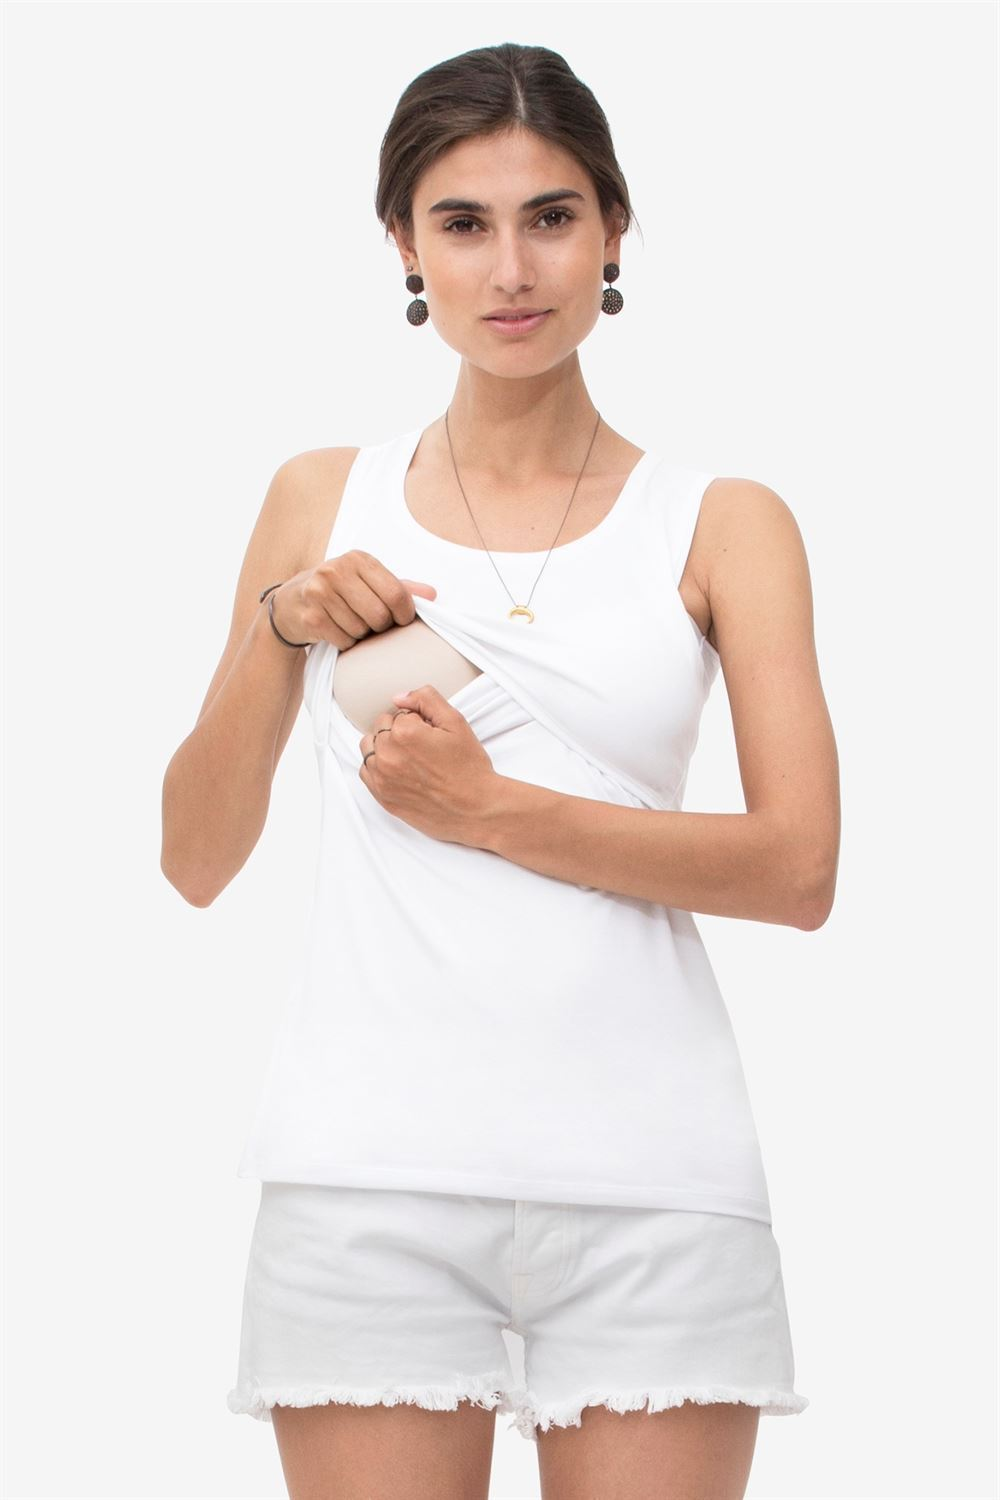 White nursing top with a deep round neck and wide straps - Access for breastfeeding